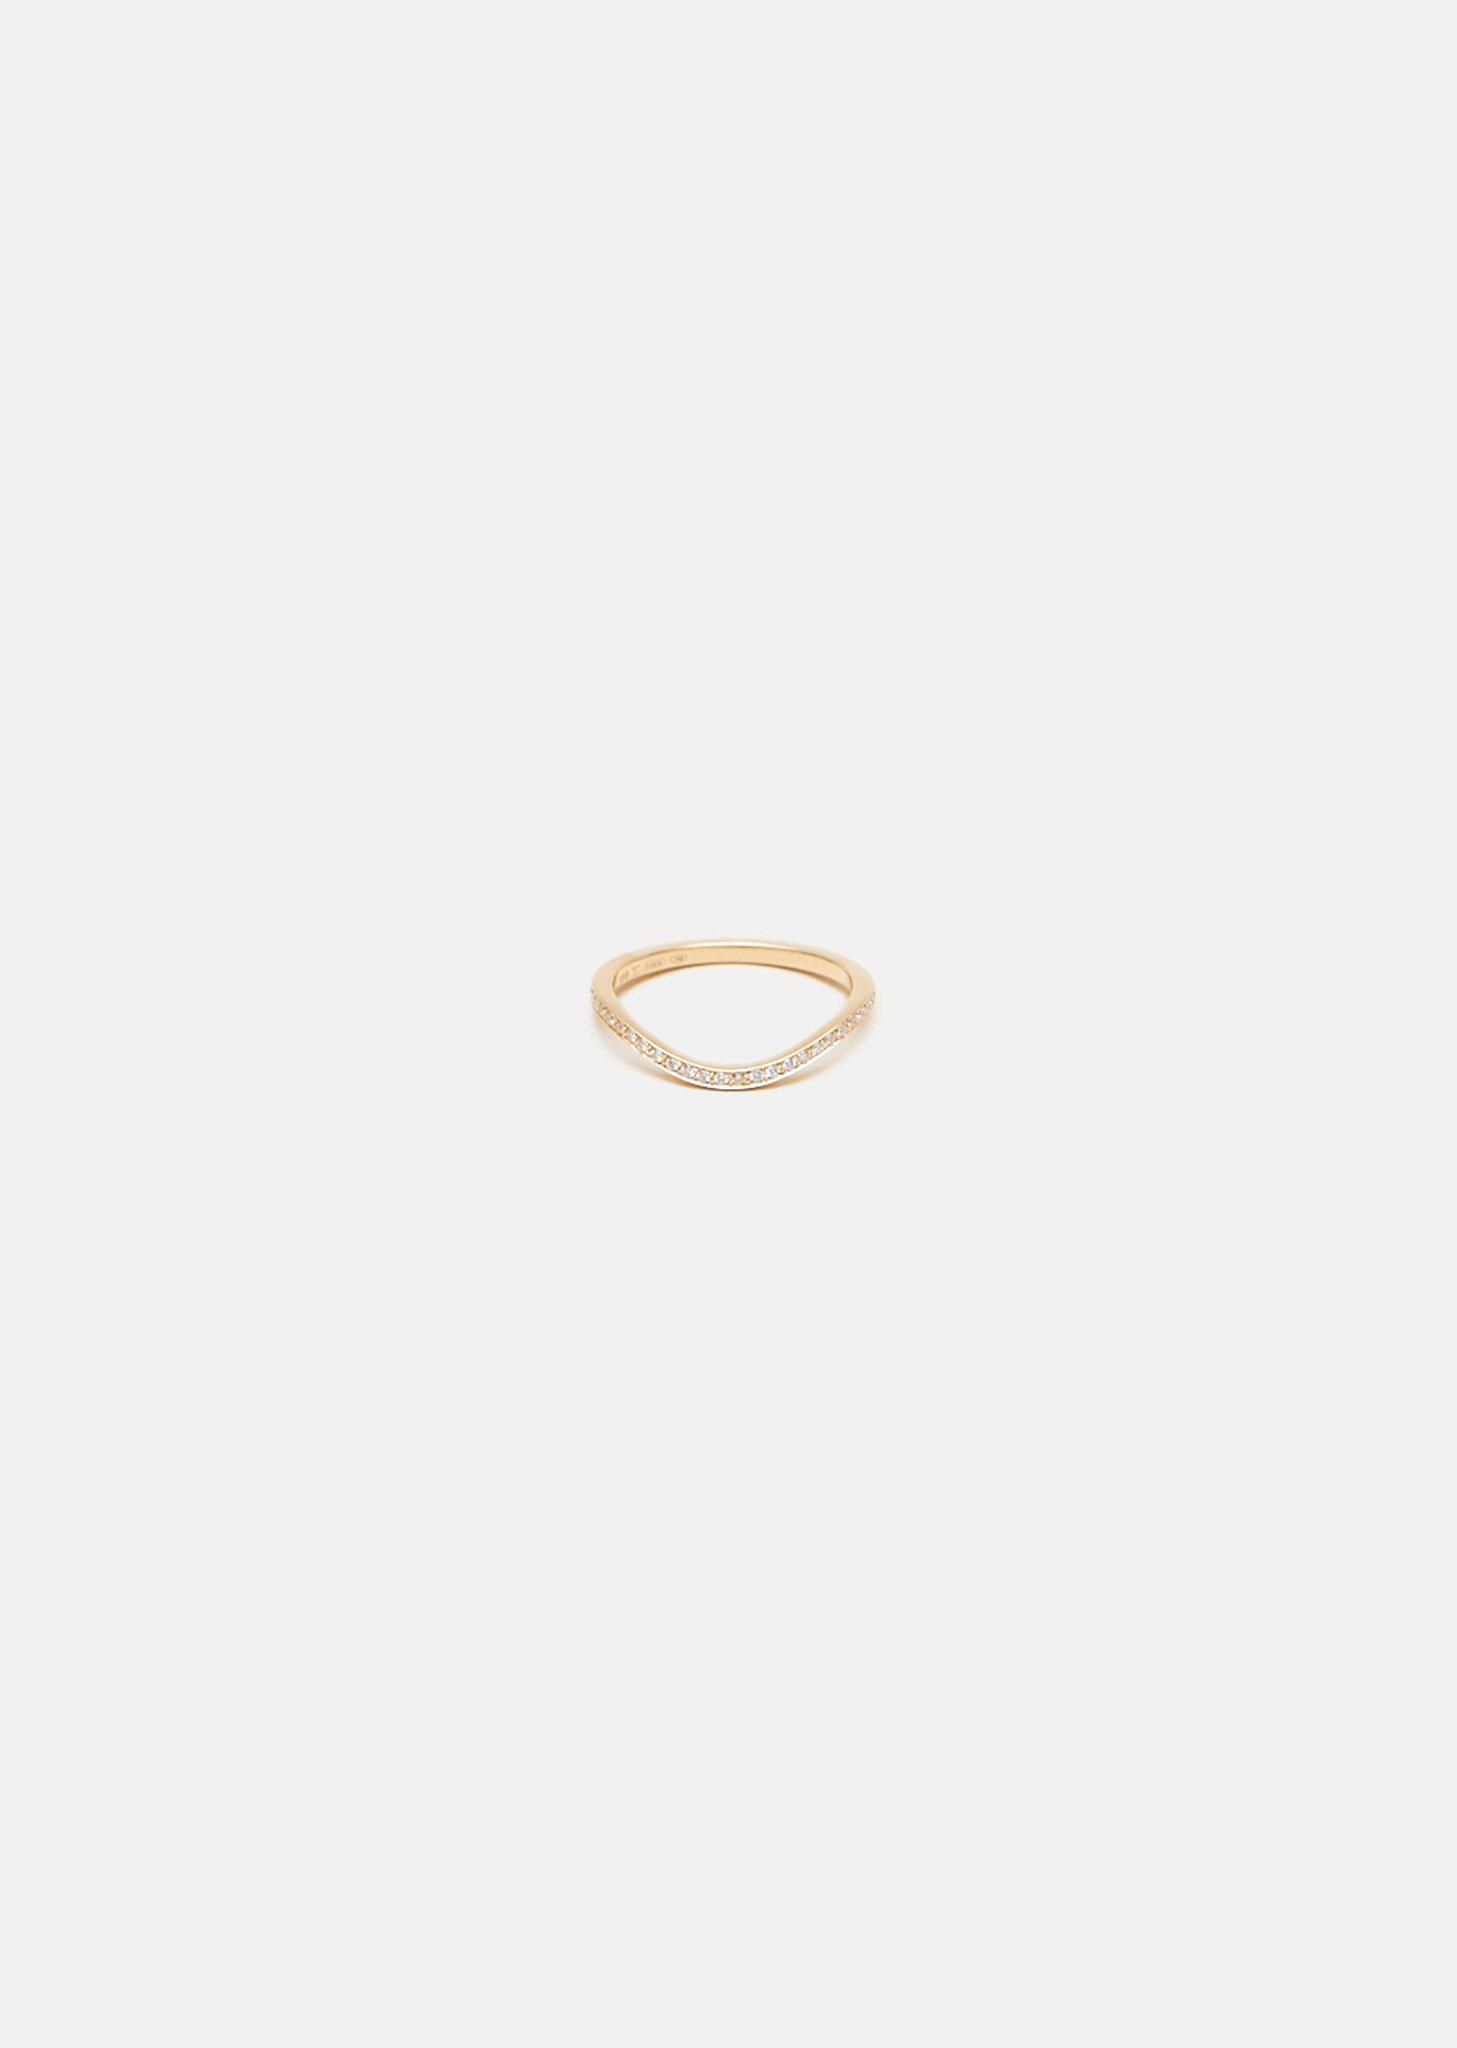 Sophie Bille Brahe Grace Ring in 18 kt Yellow Gold, 0.09 ct. tw.v (Metallic)